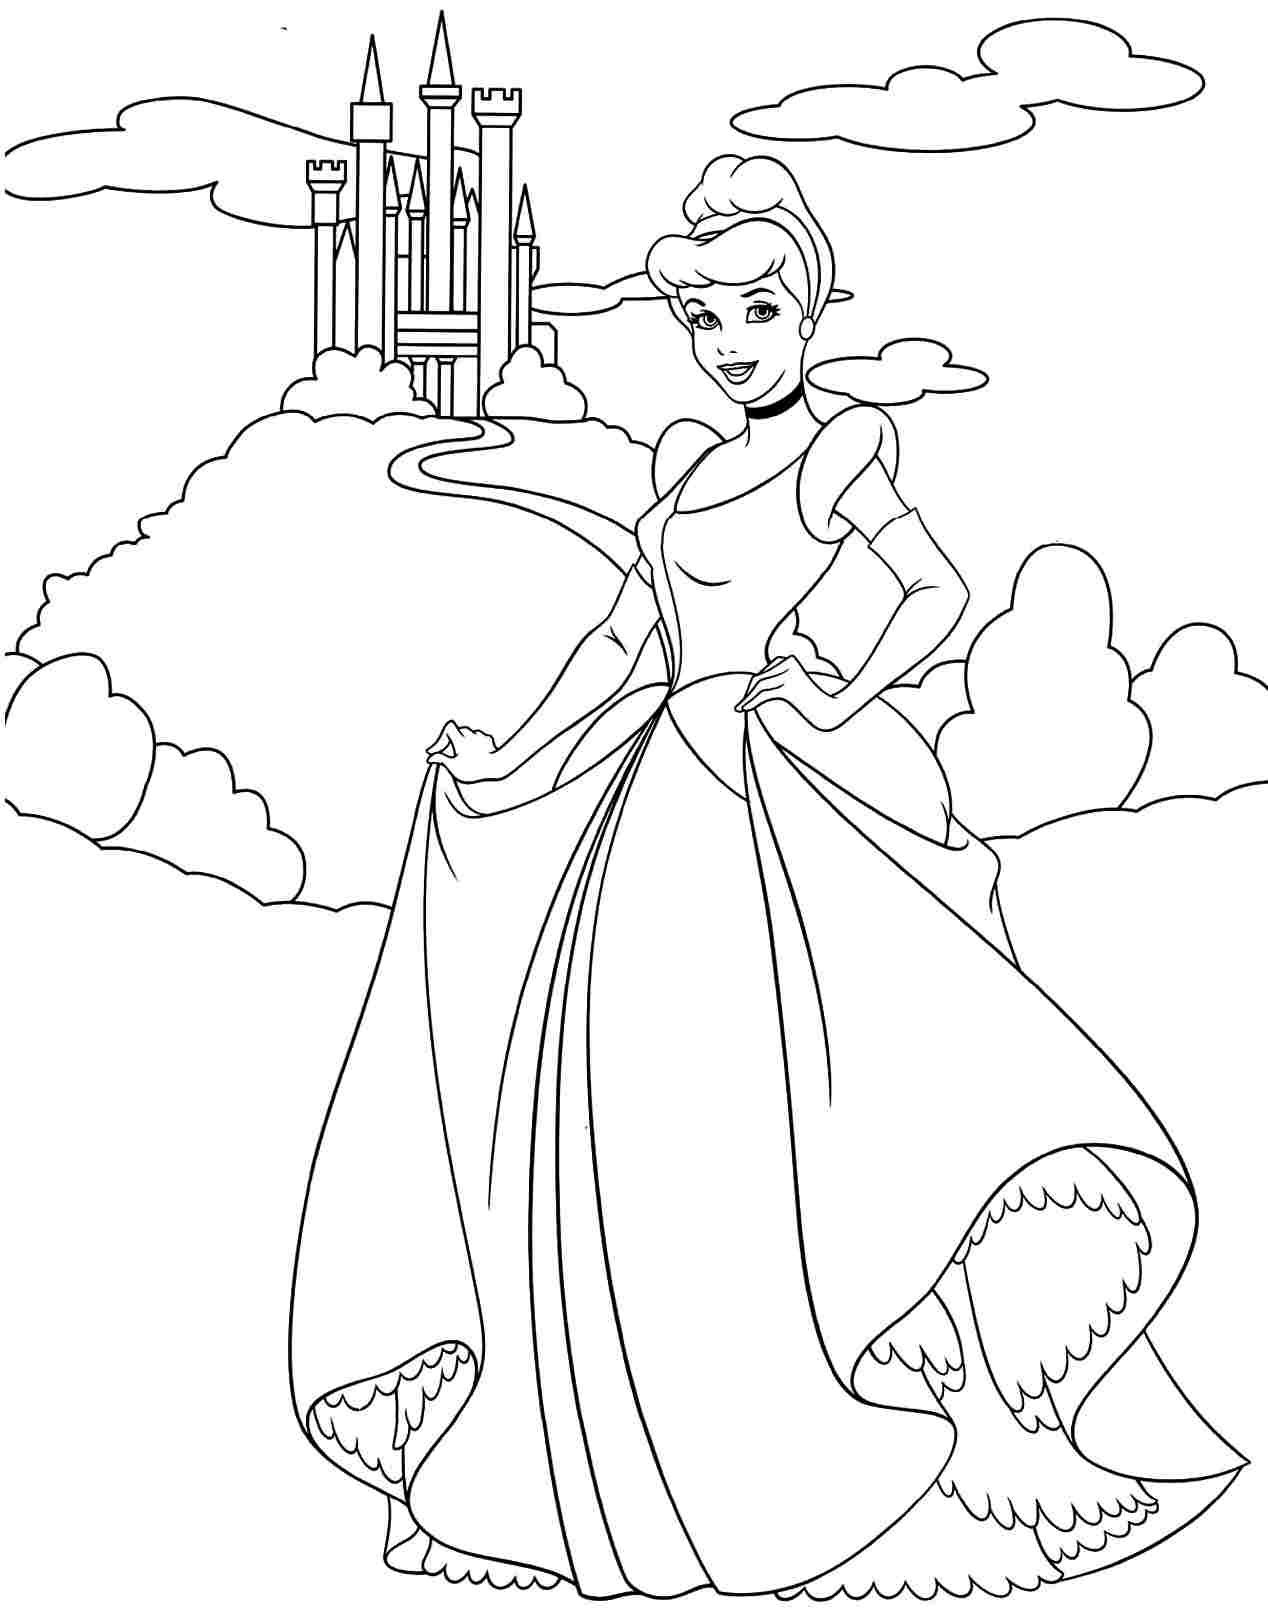 disney princess coloring pages cinderella Google Search